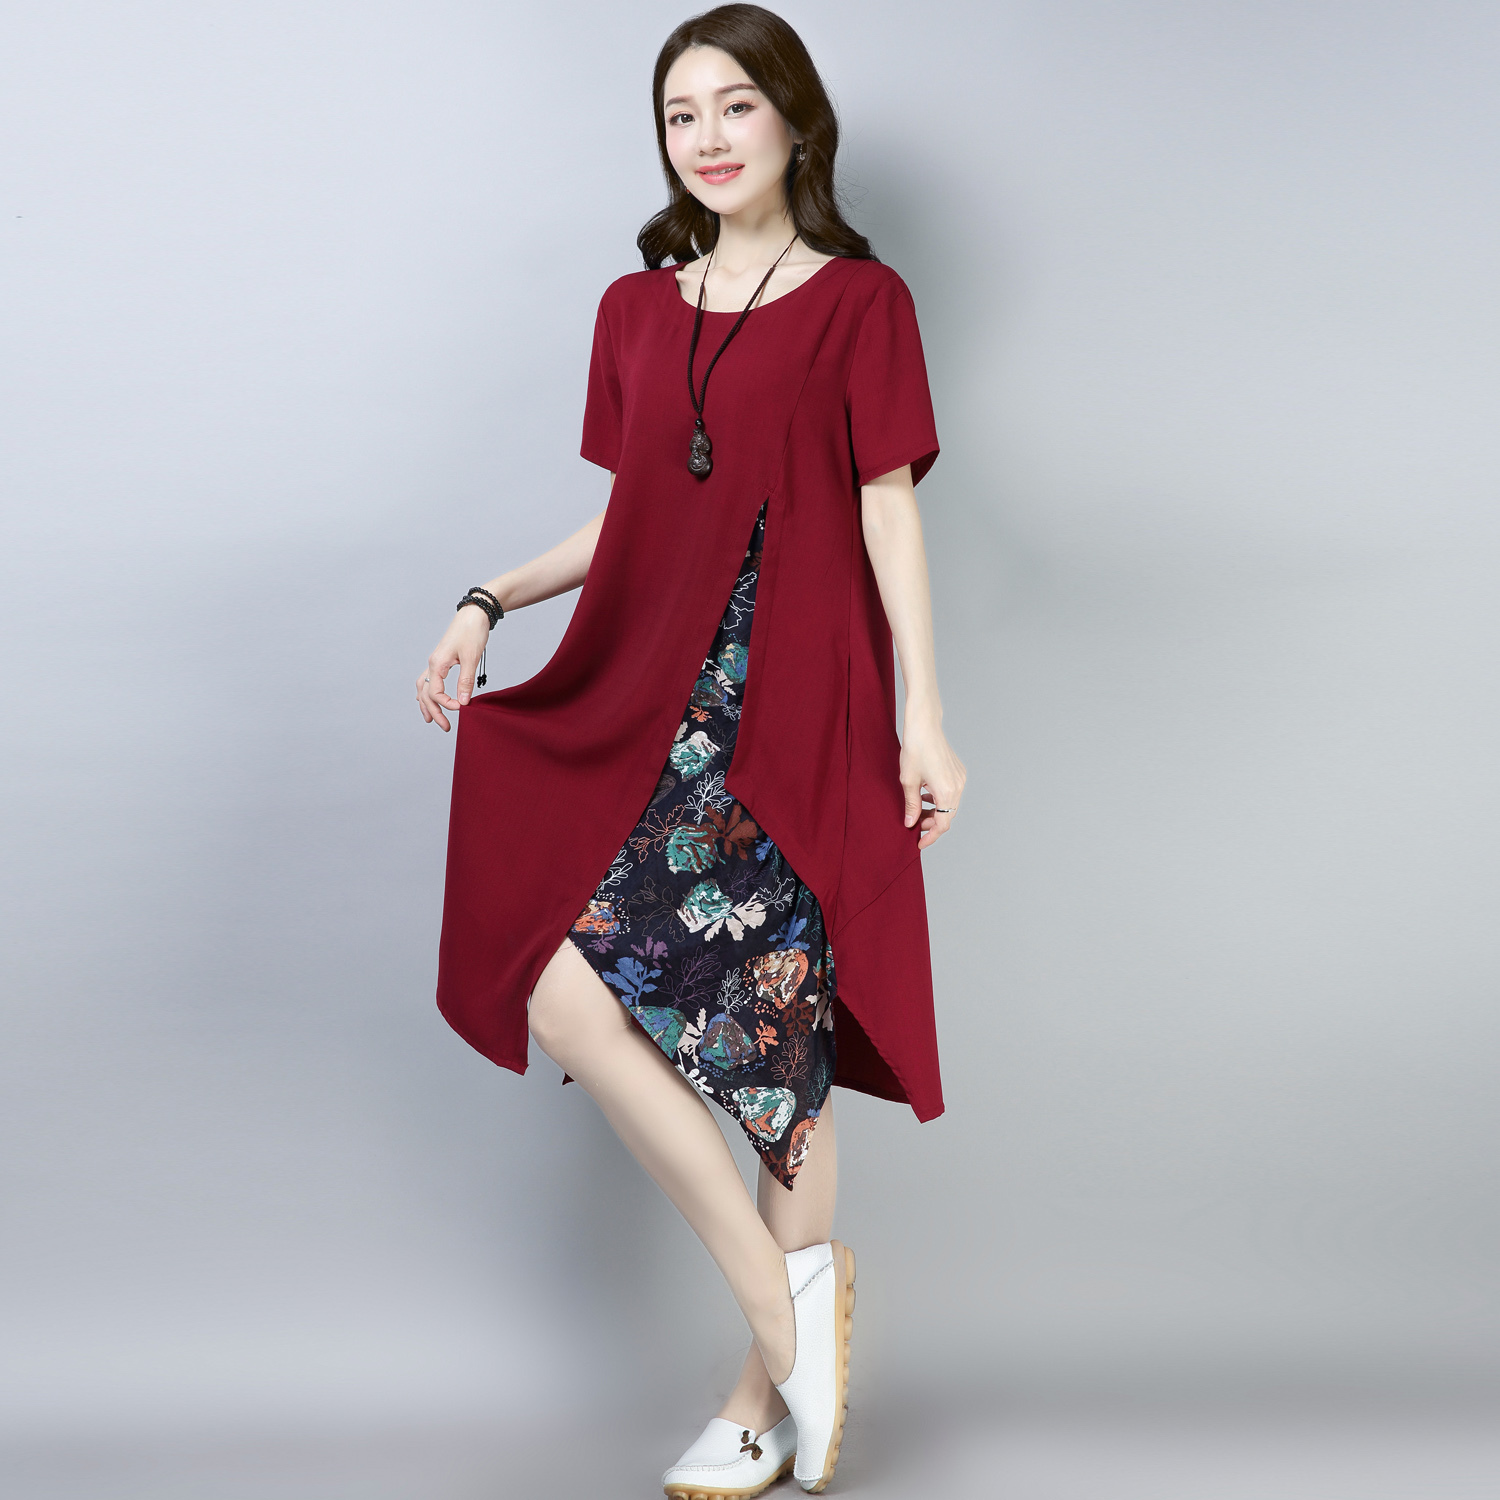 New 2019 Fashion Spring Summer Women O neck Short Sleeve Cotton Linen Dress Female Casual Party Dresses Vestidos in Dresses from Women 39 s Clothing